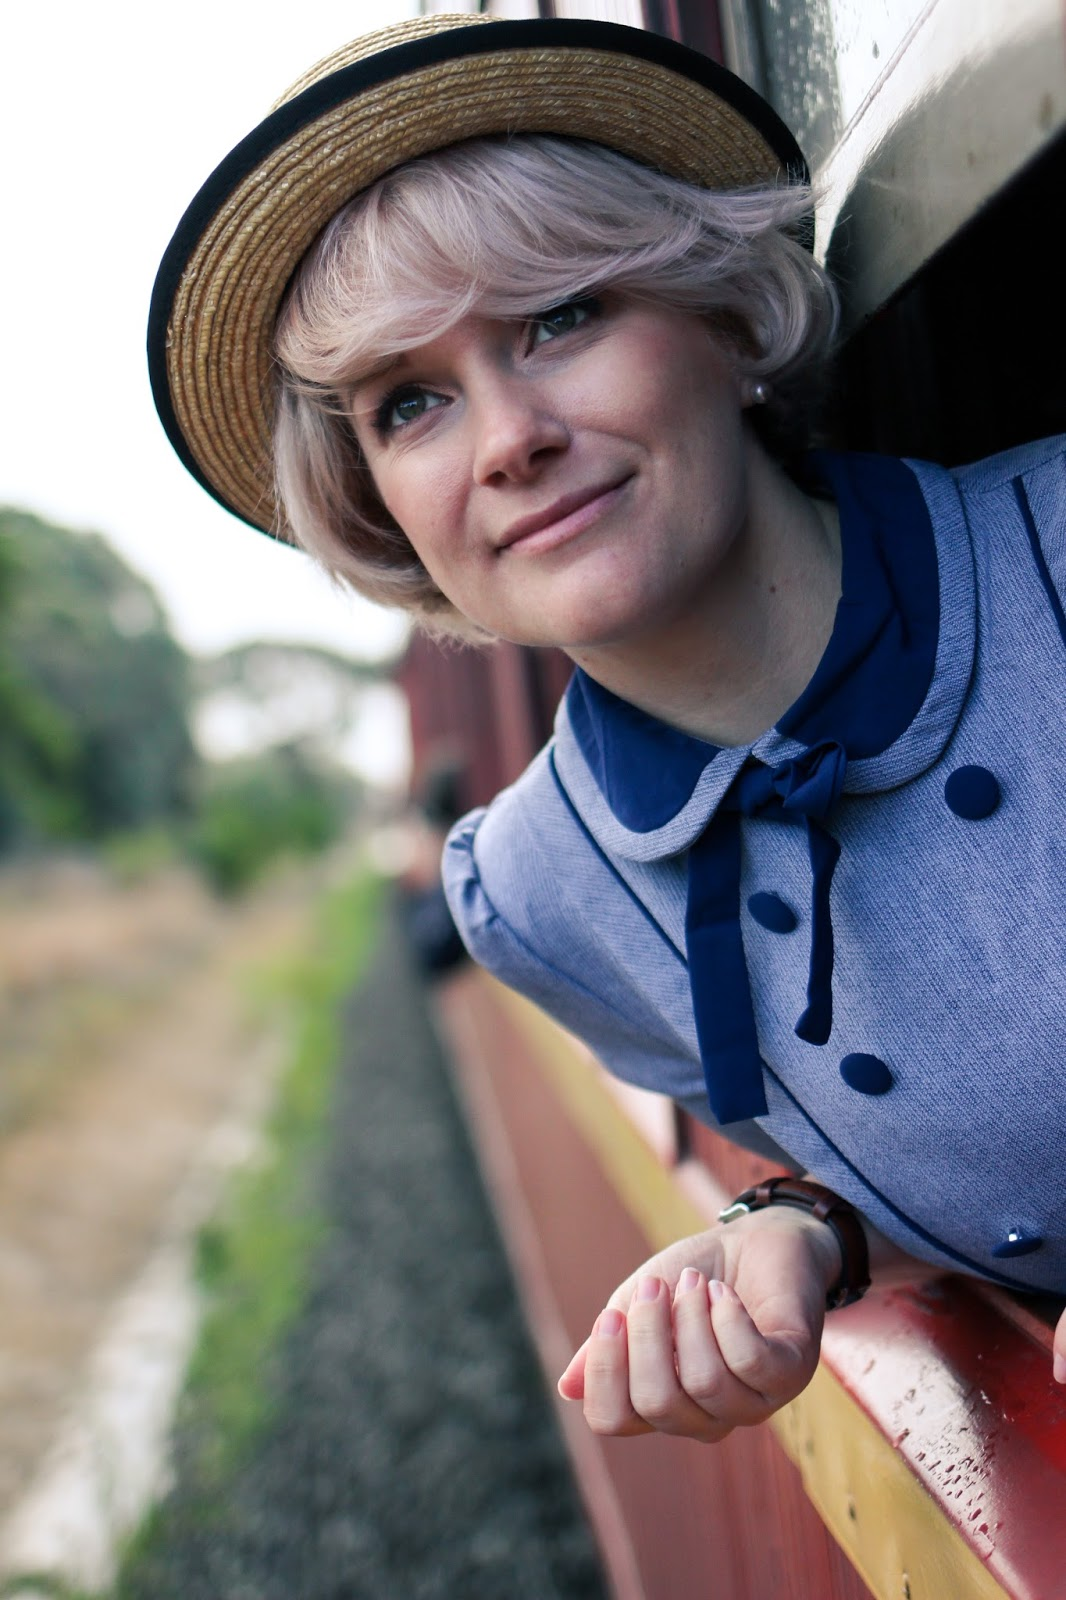 Liana of Finding Femme wearing Daniel Wellington watch, Sheinside peter pan collar dress, straw boater hat and Modcloth wedges for Ballarat Heritage Weekend on the steam train.